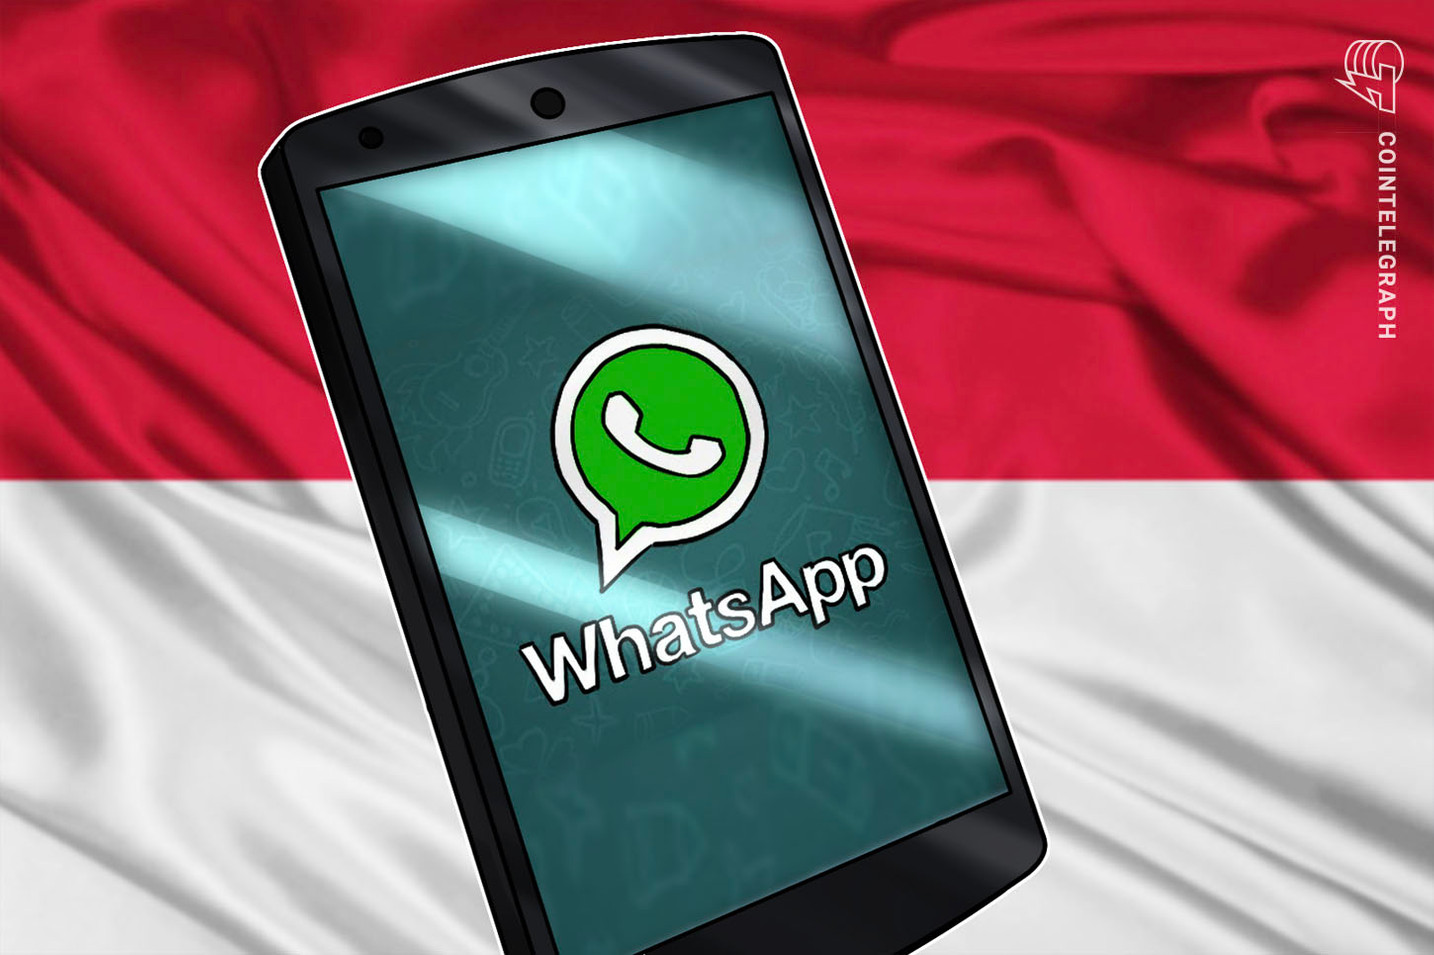 Facebook-Owned WhatsApp Looks to Launch Digital Payments in Indonesia